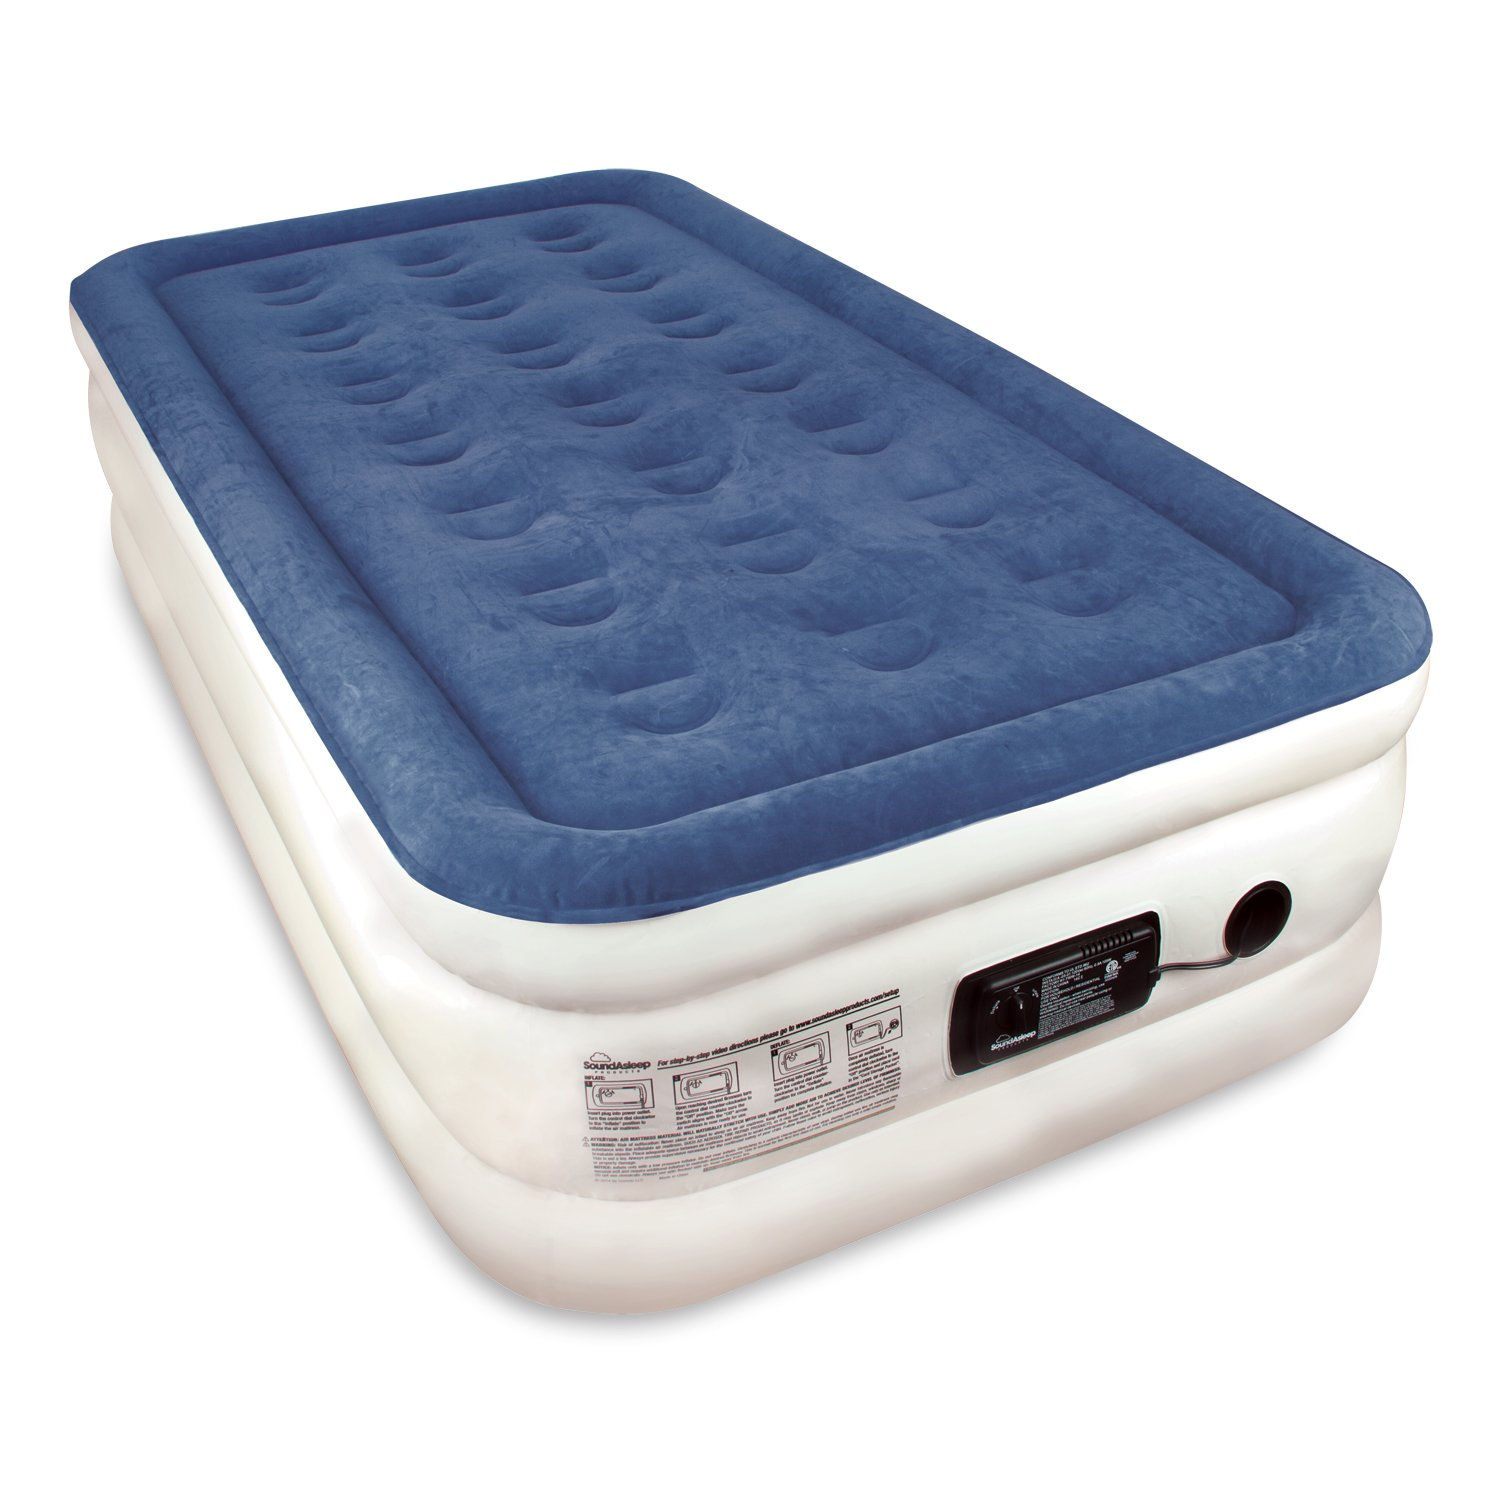 soundasleep air mattress twin Amazon.com: SoundAsleep Raised Twin Size Premium Air Mattress  soundasleep air mattress twin